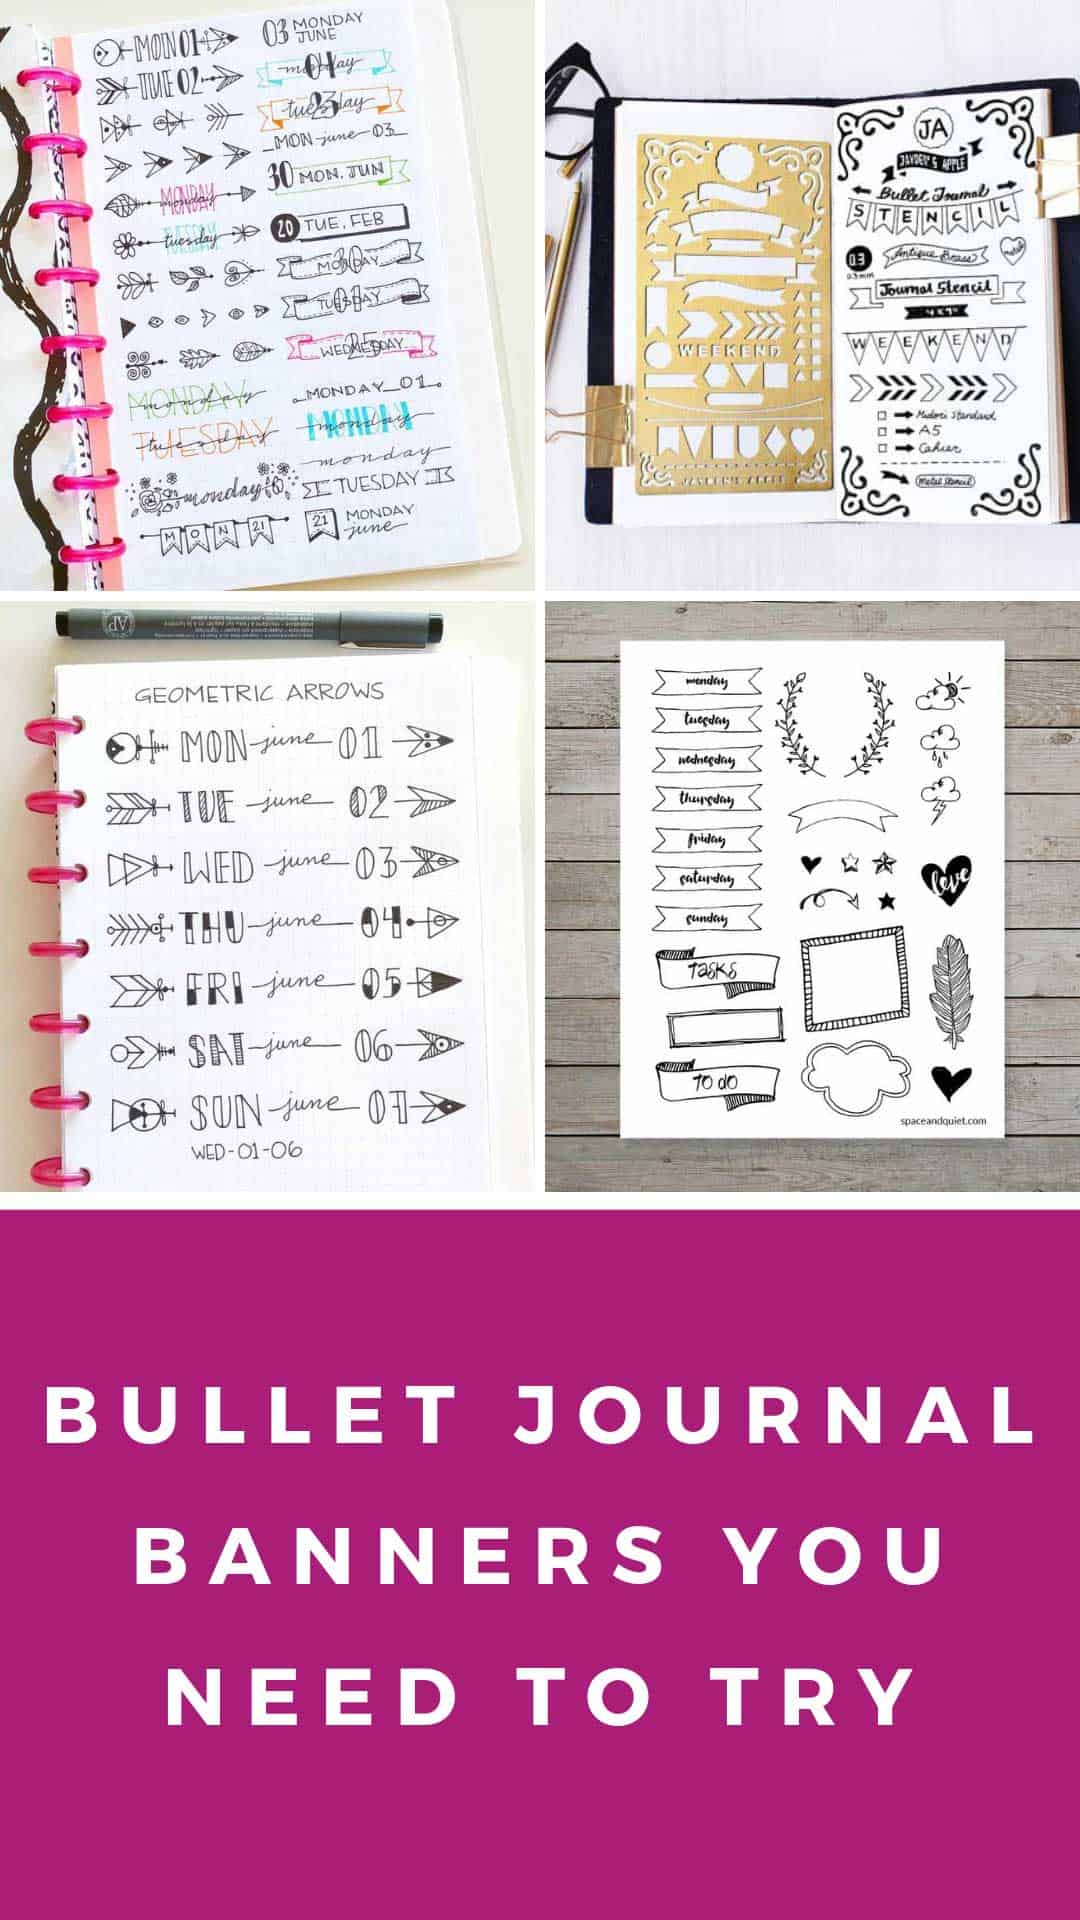 Need a bullet journal banner? Check out these creative ideas and doodles as well as a sneaky trick to print them out if you don't like drawing!